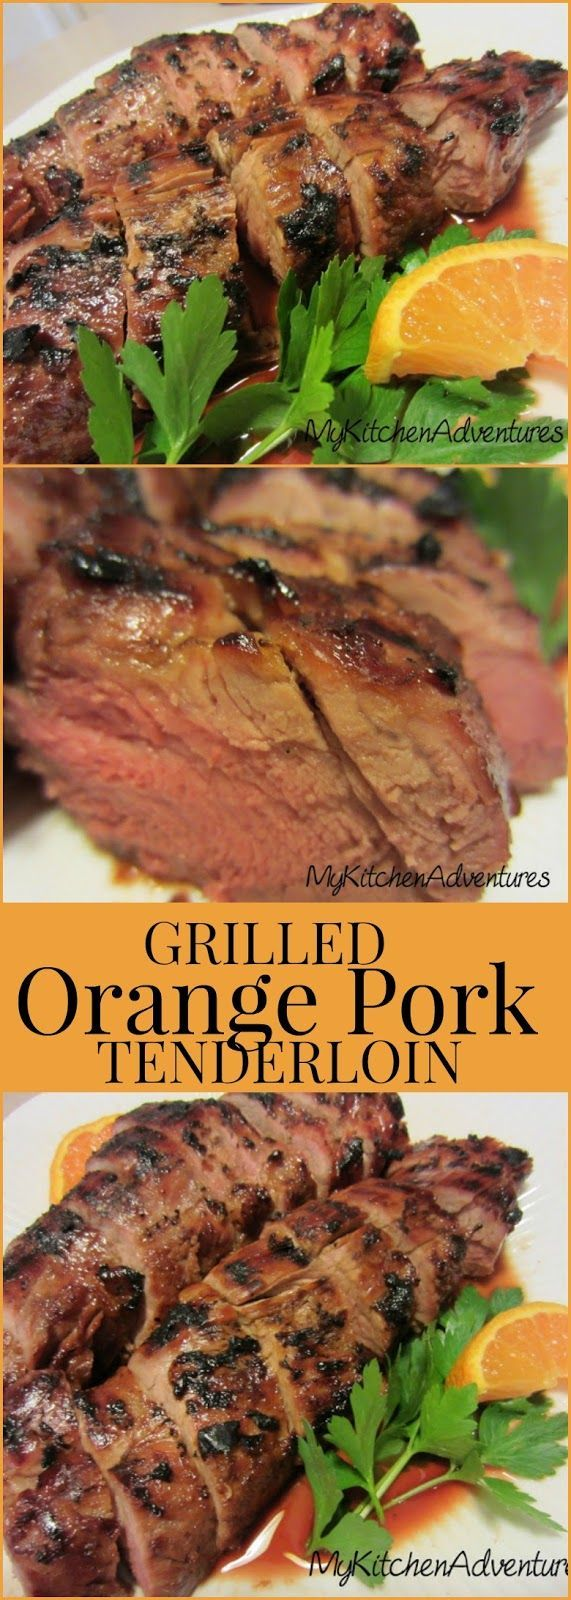 Grilled Orange Pork Tenderloin | by Renee's Kitchen Adventures - easy grilled recipe for orange marinated pork tenderloin great for weeknight dinners or even Sunday Suppers! Fresh squeezed orange juice enhances the flavor of this lean pork.